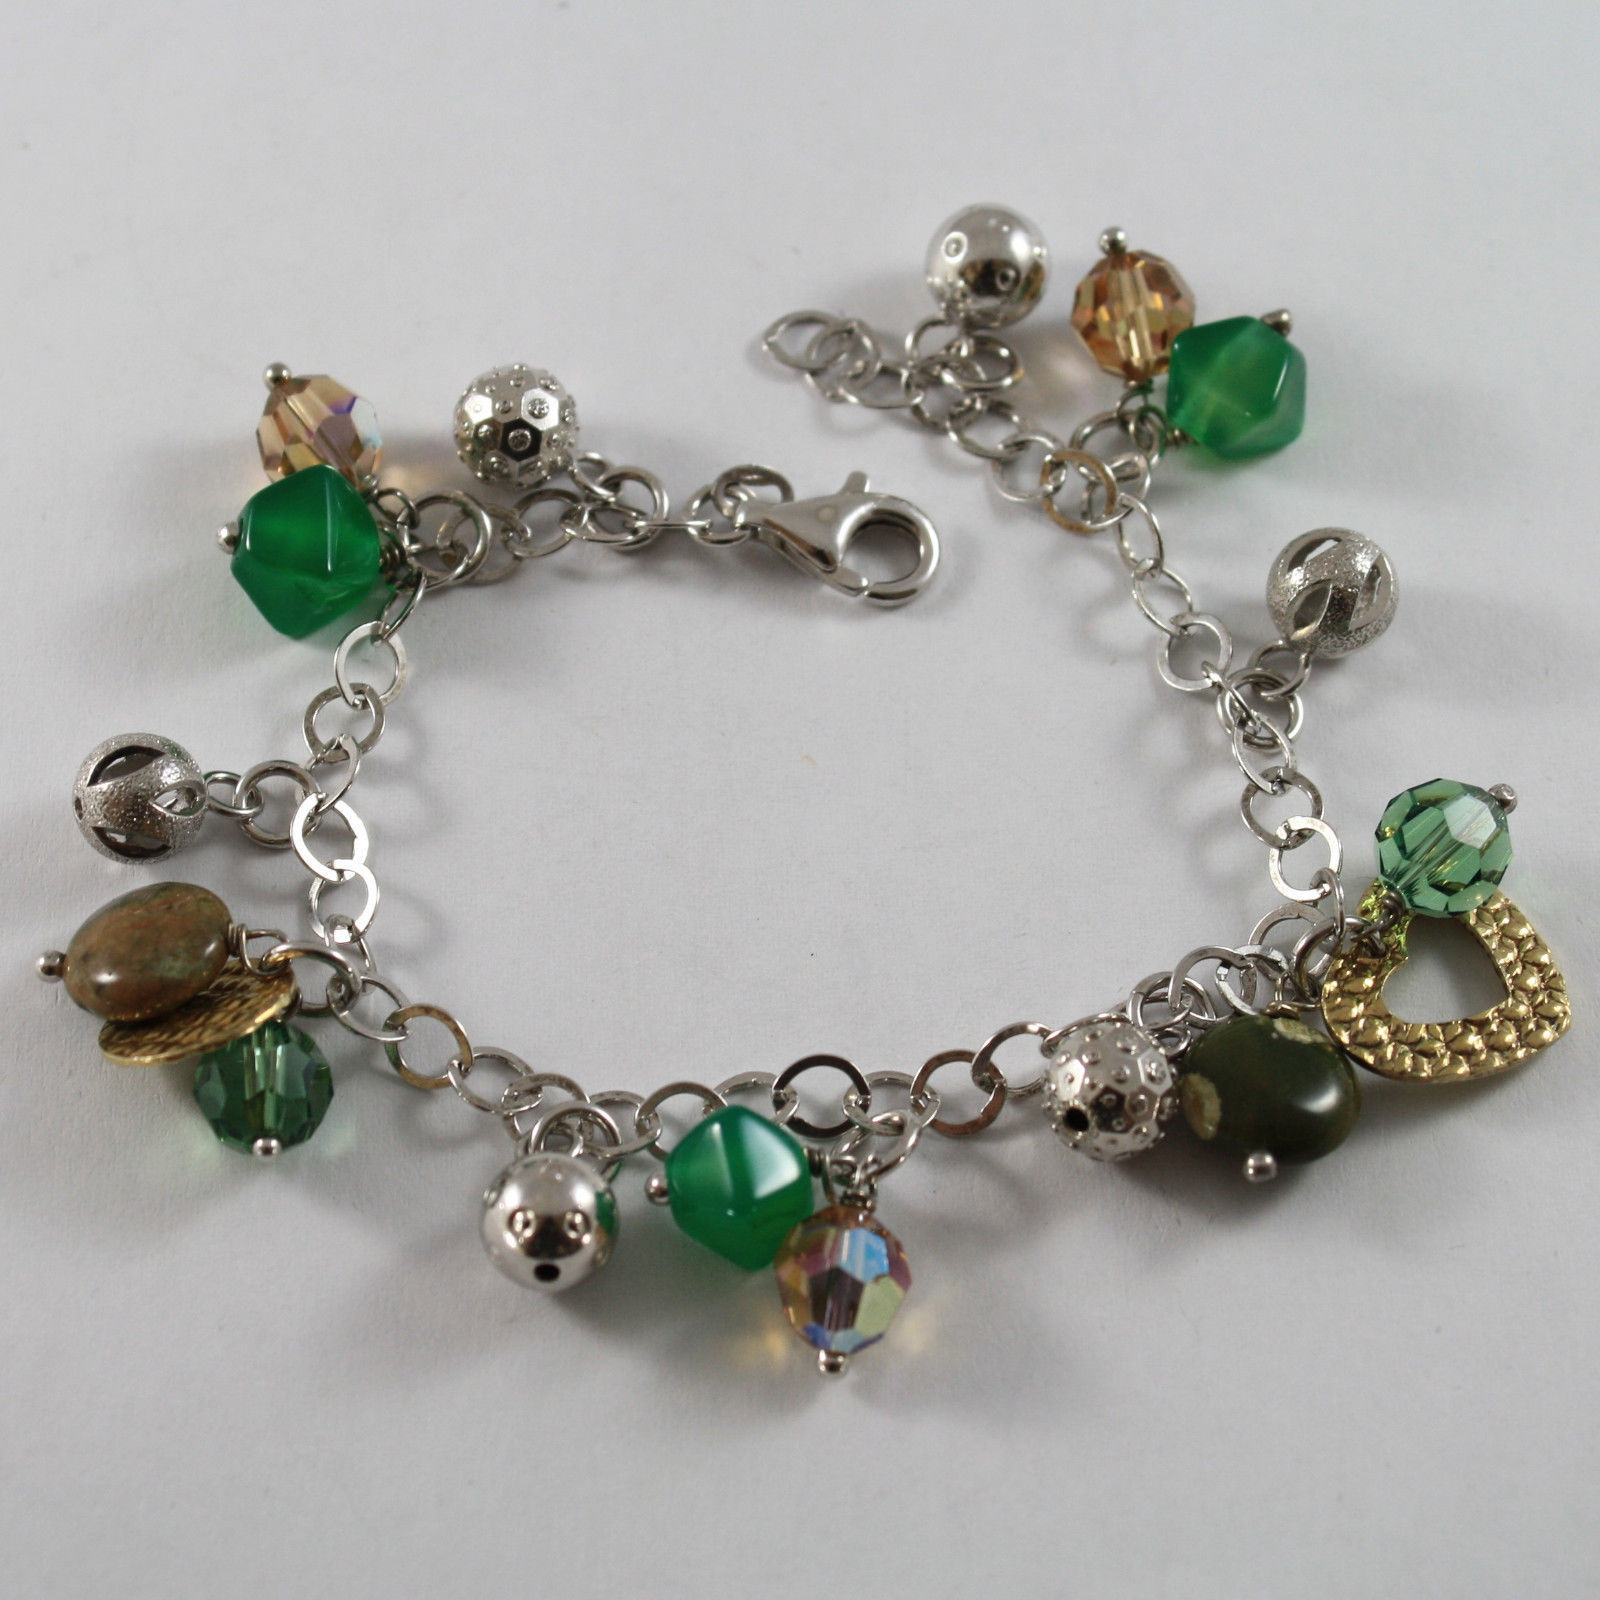 .925 RHODIUM SILVER BRACELET WITH GOLDEN CHARMS, CRISTAL AND JASPER